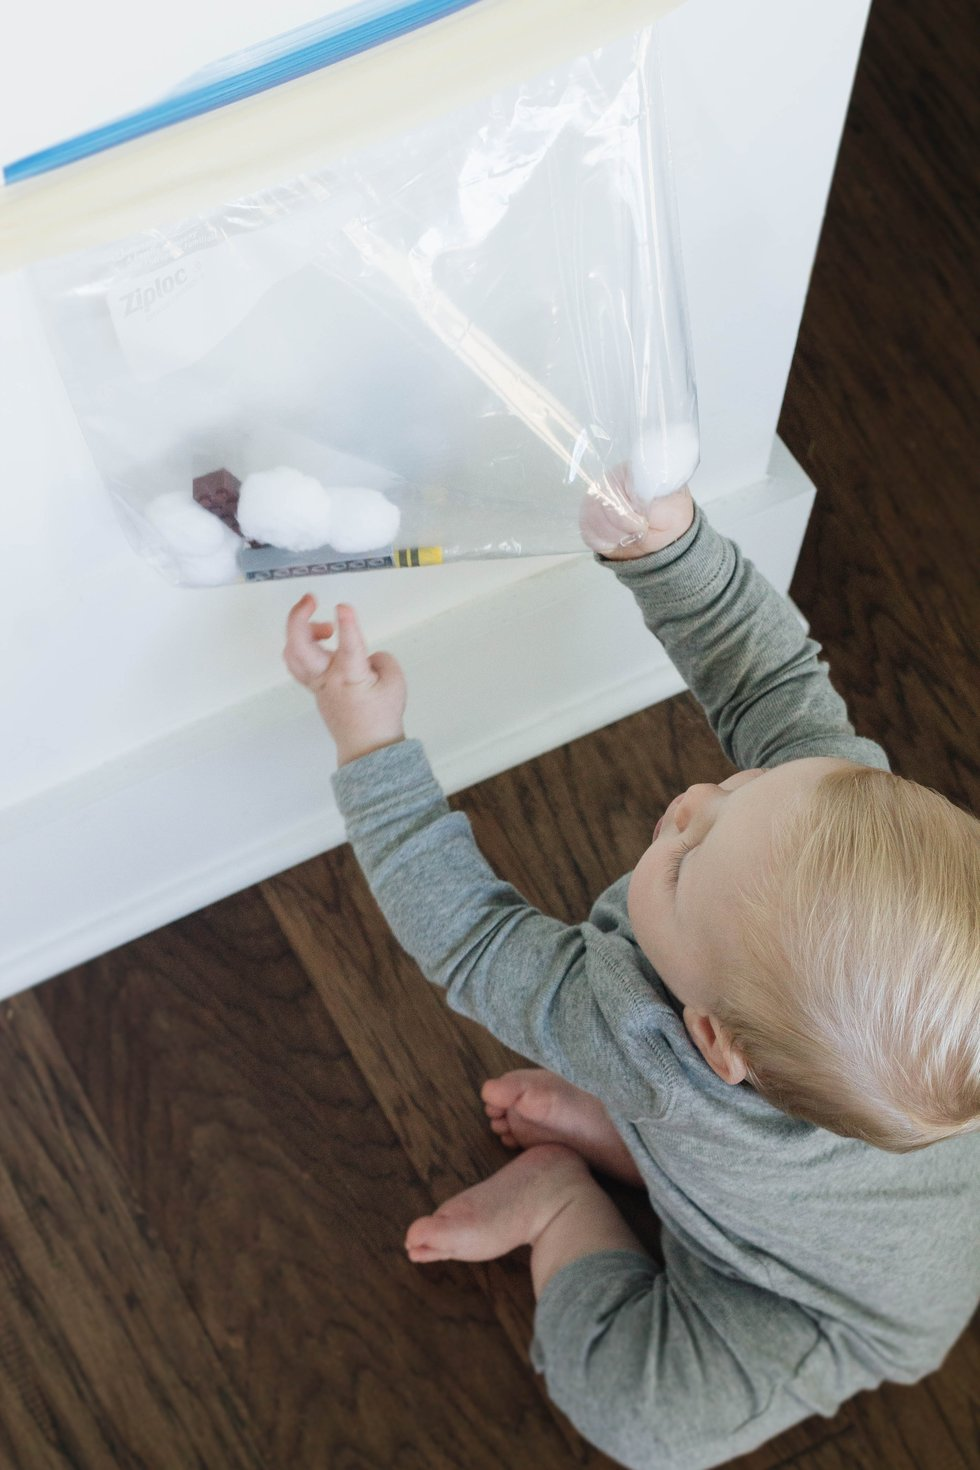 50 Sensory Activities For 1 Year Olds To Spark Play Development